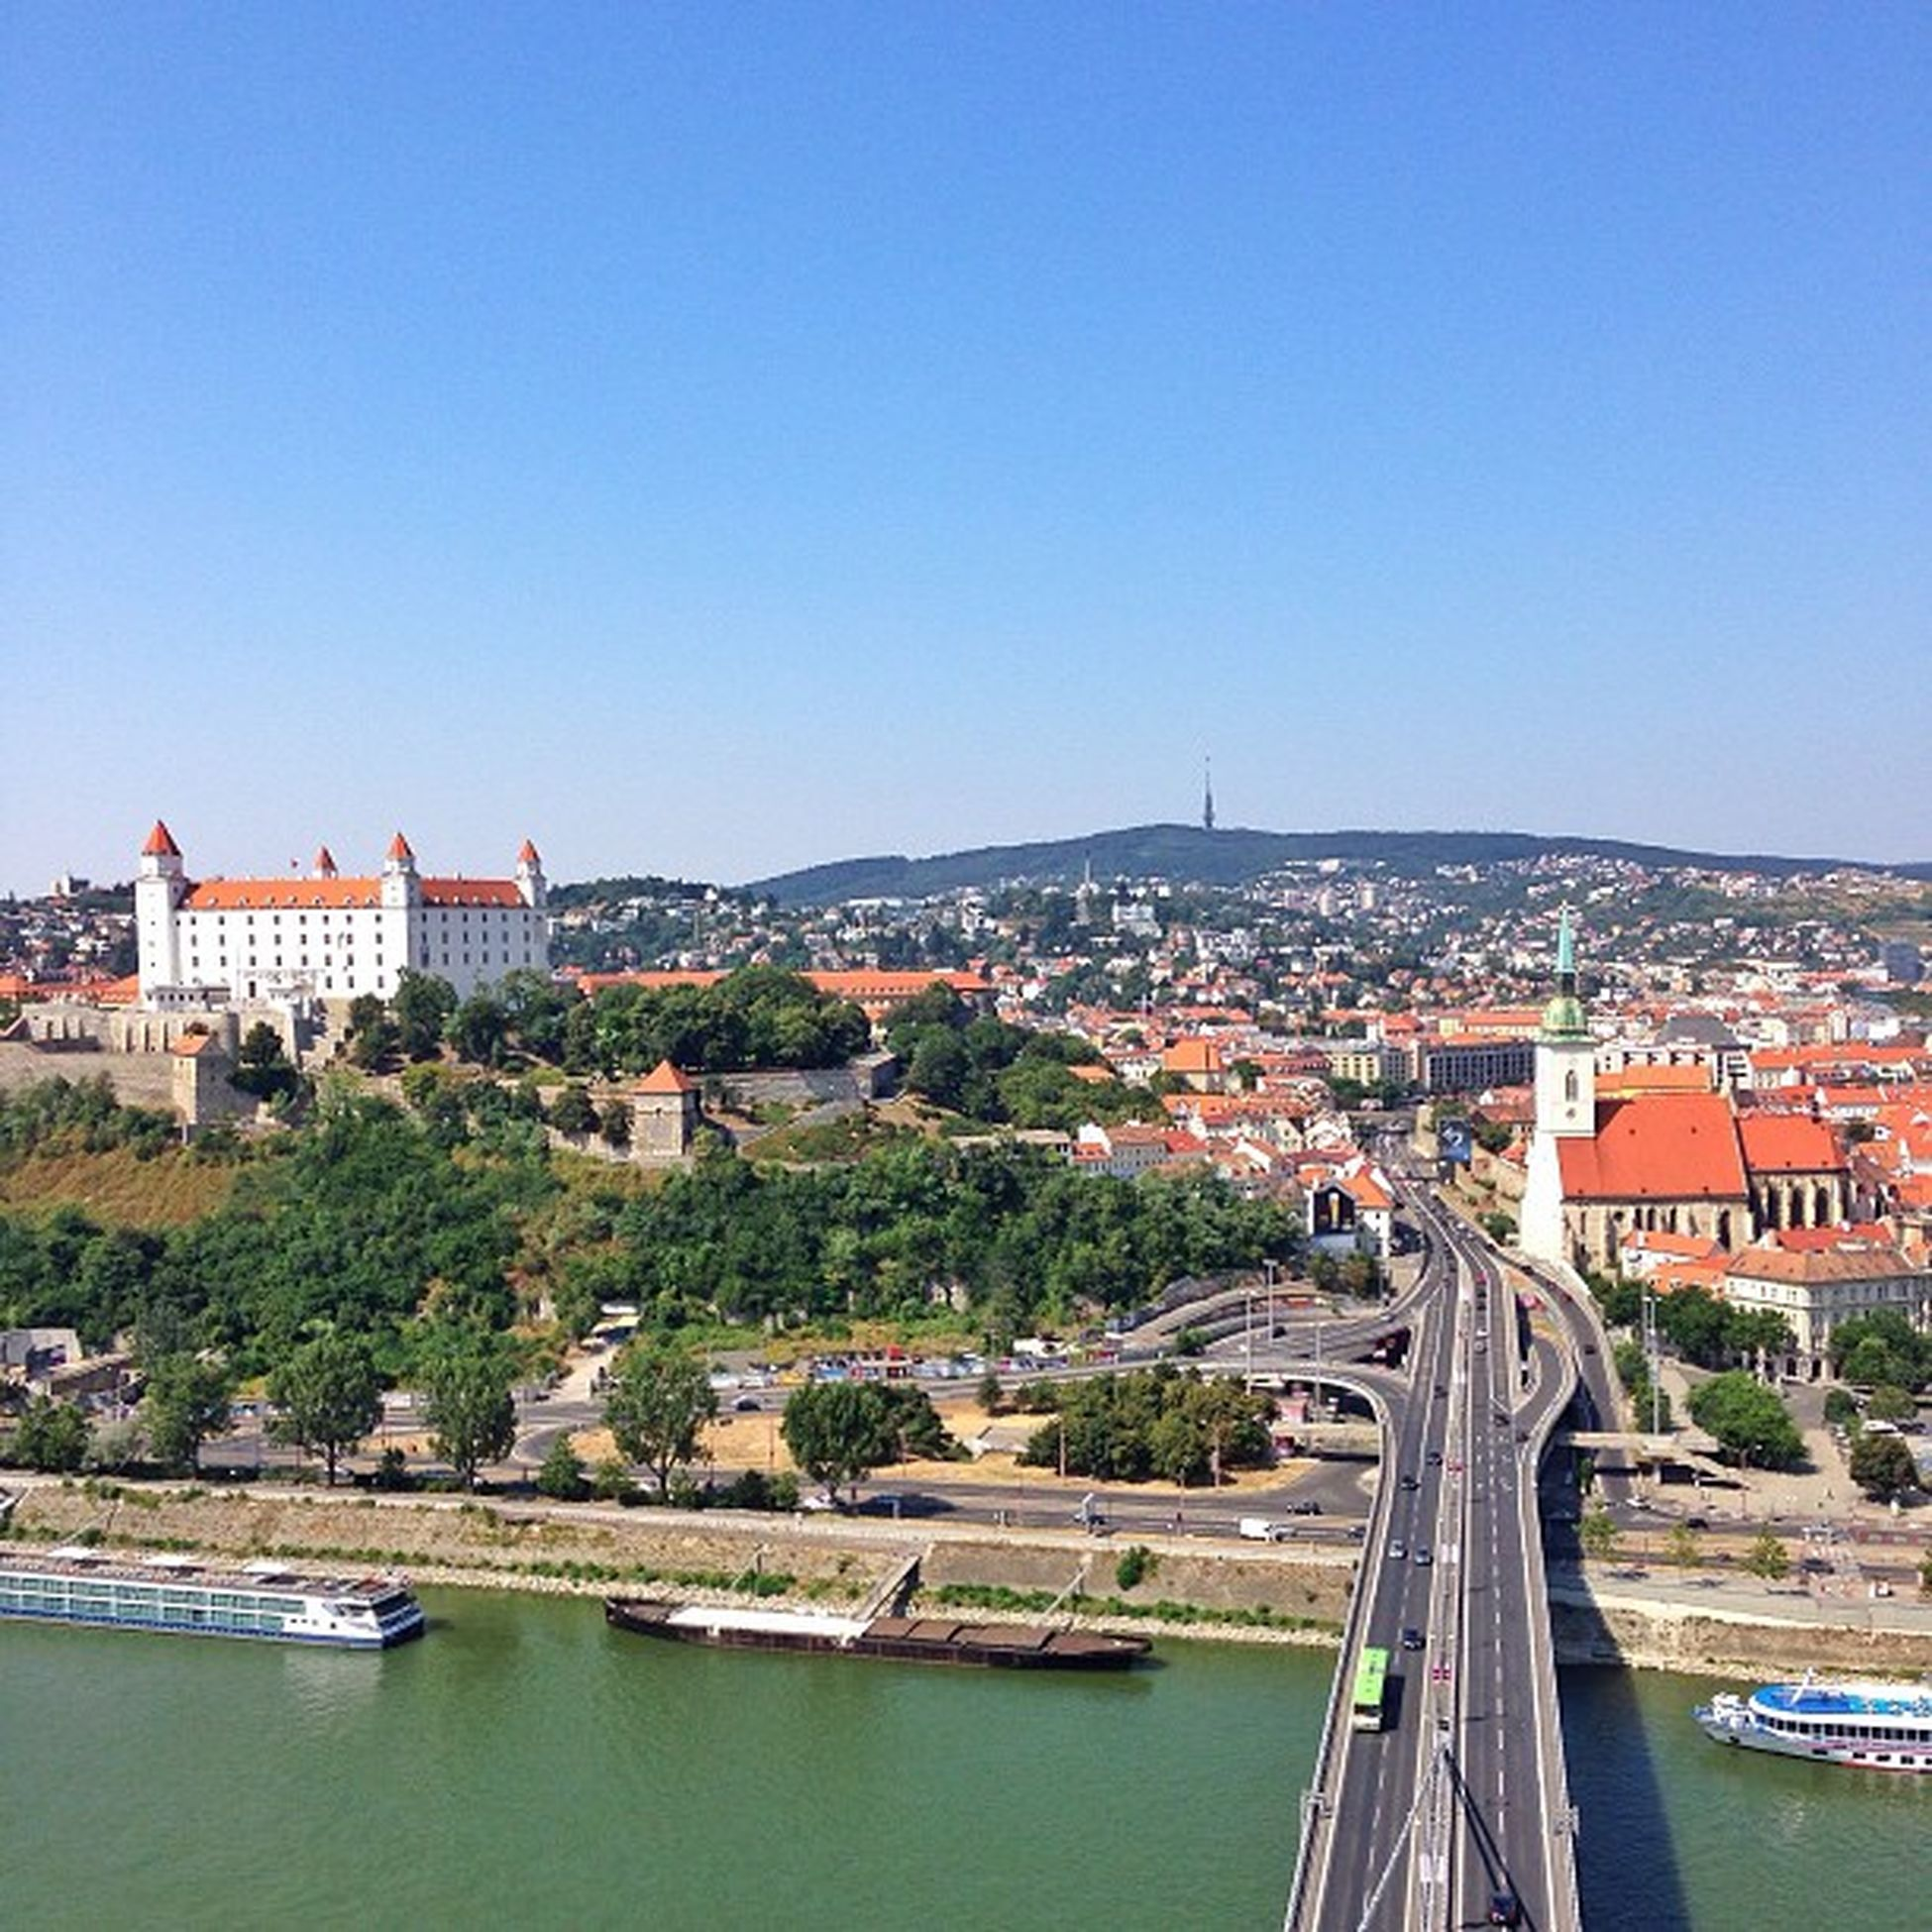 Couldn't leave #Bratislava without taking couple shots from top of the #UFO ?????? You can see Bratislava #Castle on The left, TV #Tower on #horizont and famous for #coronations of kings in the past, St.Martin's #Cathedral ? Capture_today Top_masters Cathedral From_city UFO Iccity Castle Coronations Tower Bratislava Horizont  Gang_family Allshots_ Ic_cities O2travel